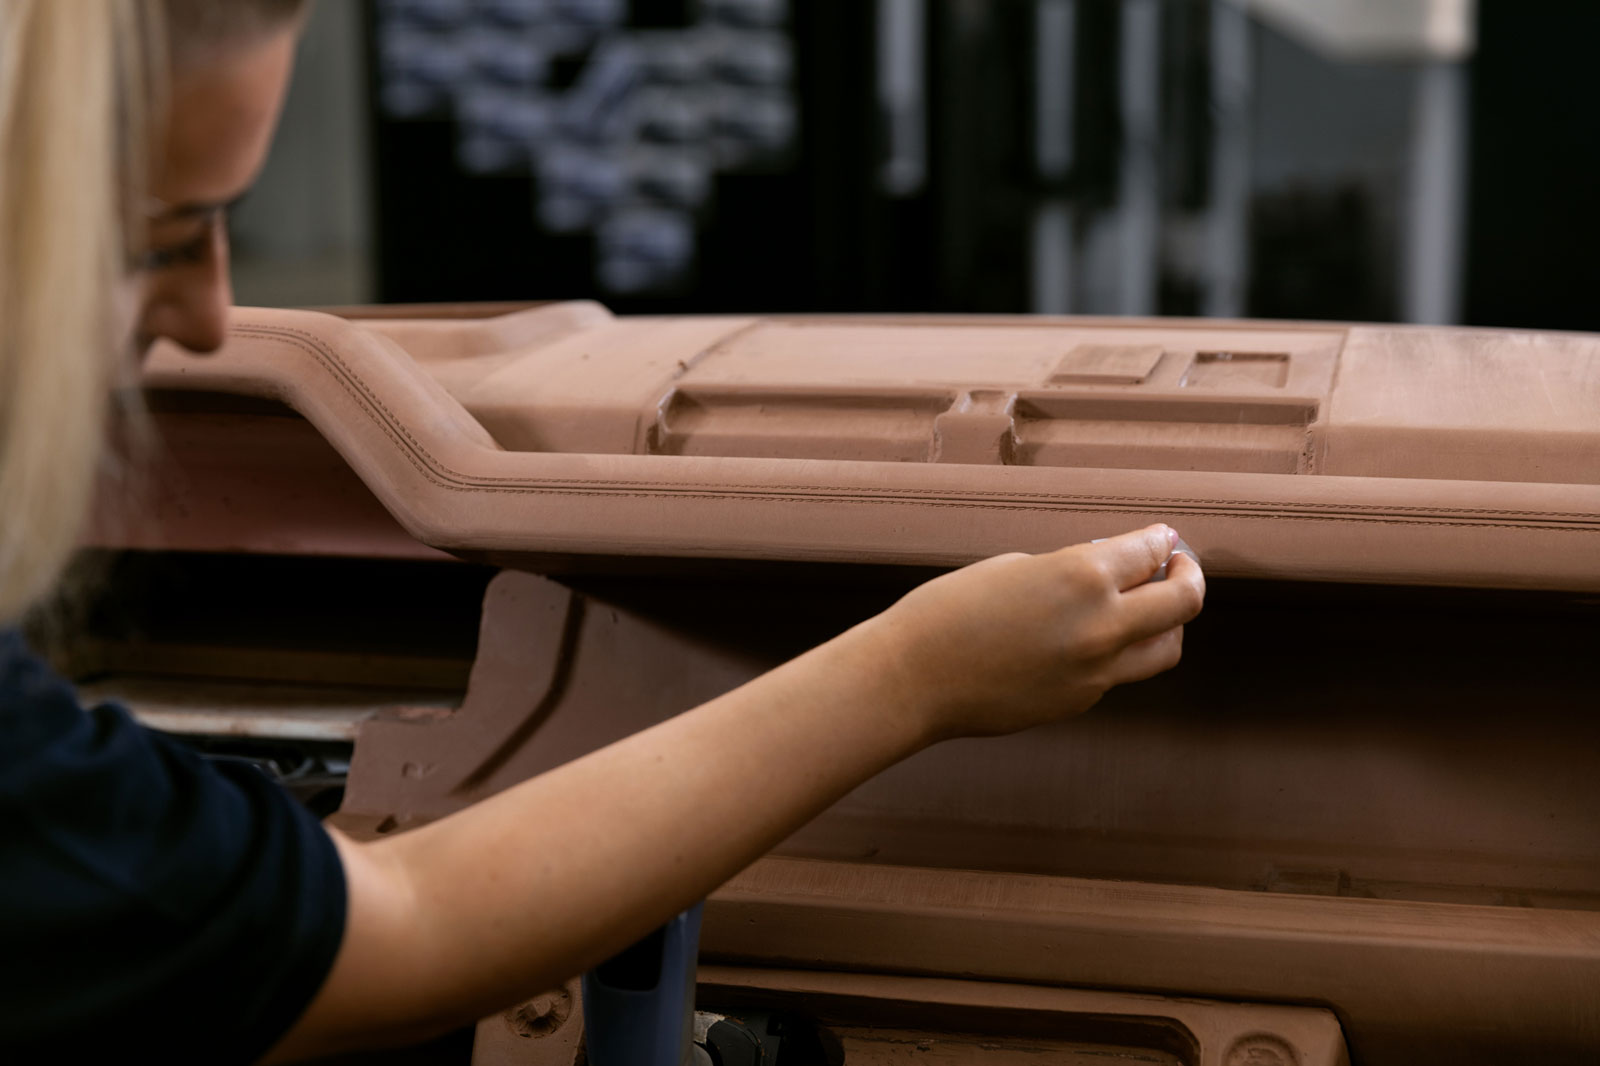 New Land Rover Defender Design Process Interior Clay Modeling